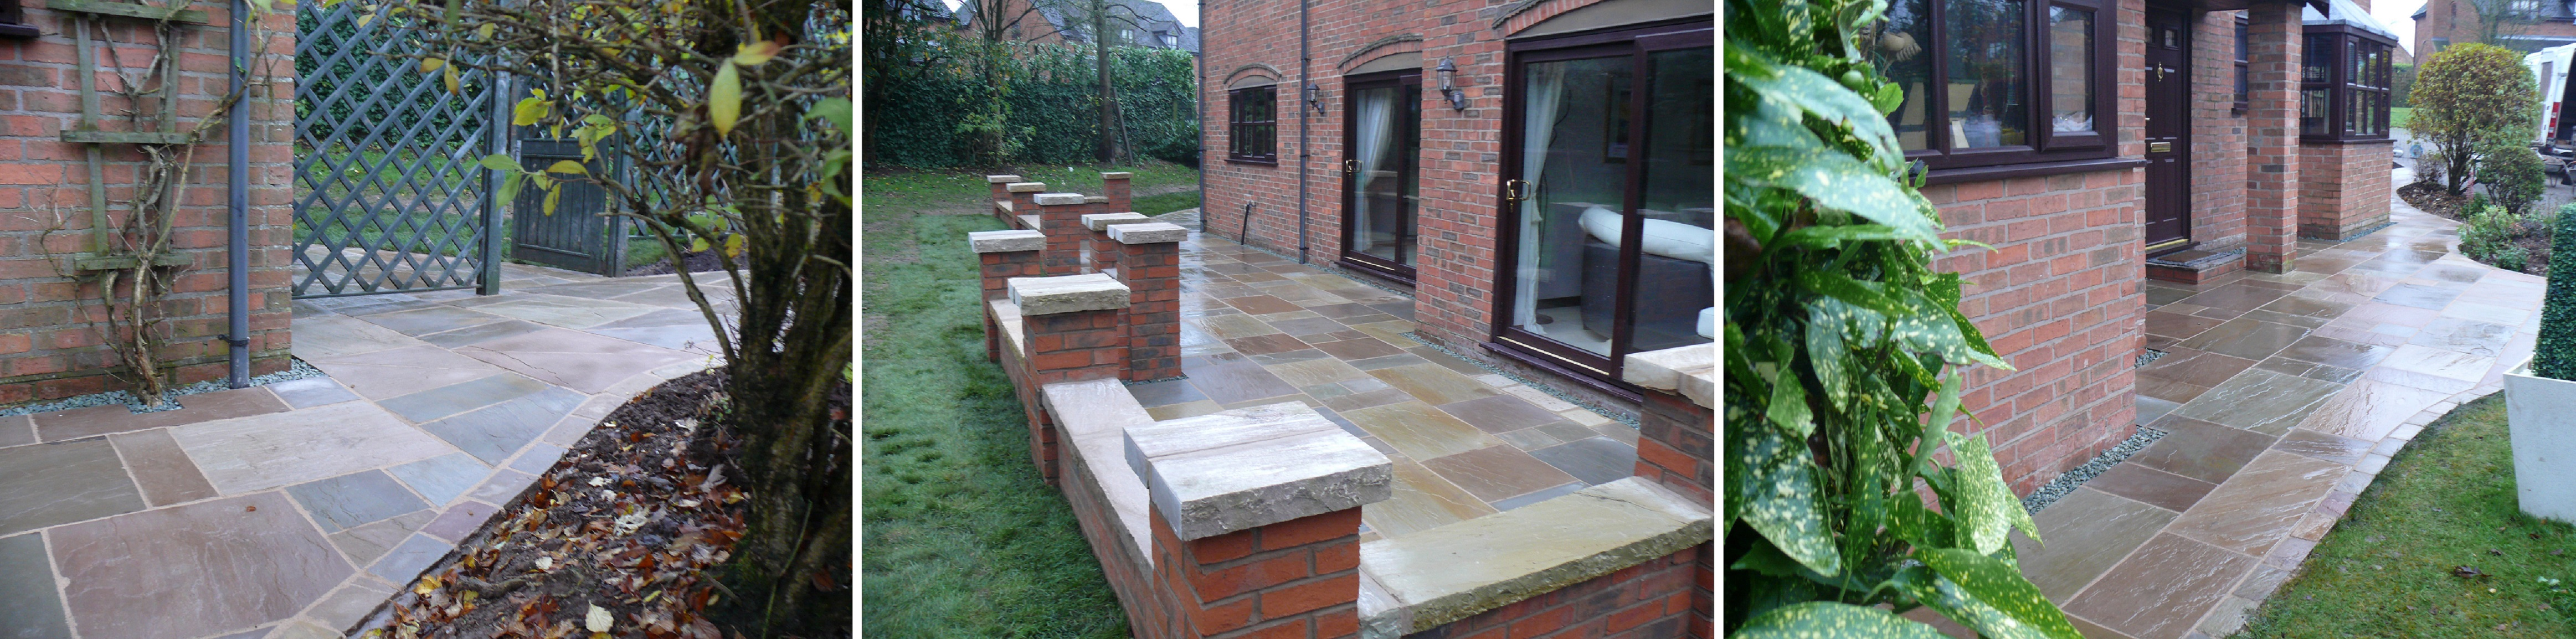 Landscaping in Prestbury - Indian Stone Paving and Brick Wall